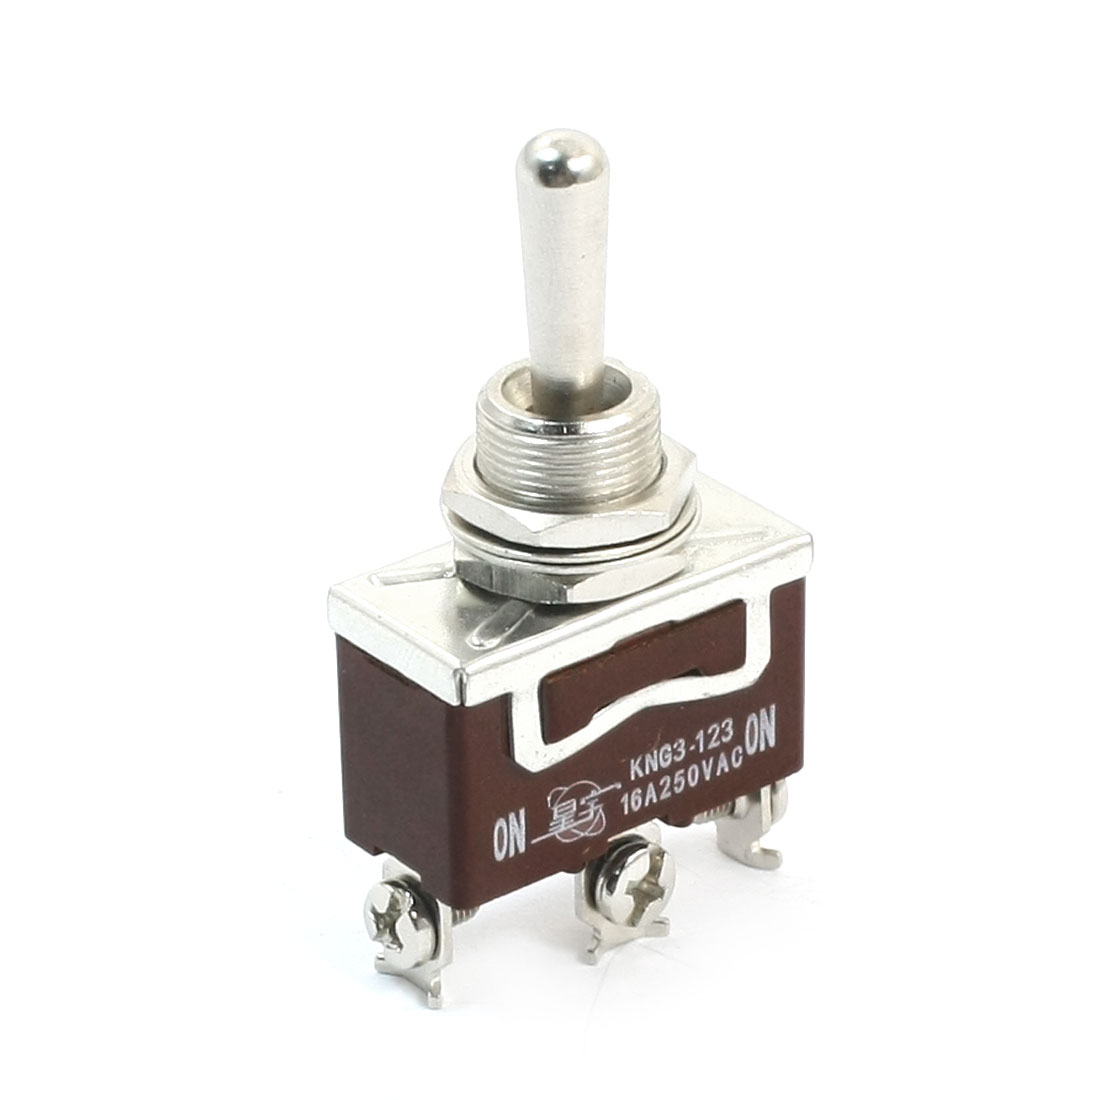 AC 250V 16A SPDT 3-Way ON-OFF-ON Power Control Toggle Switch